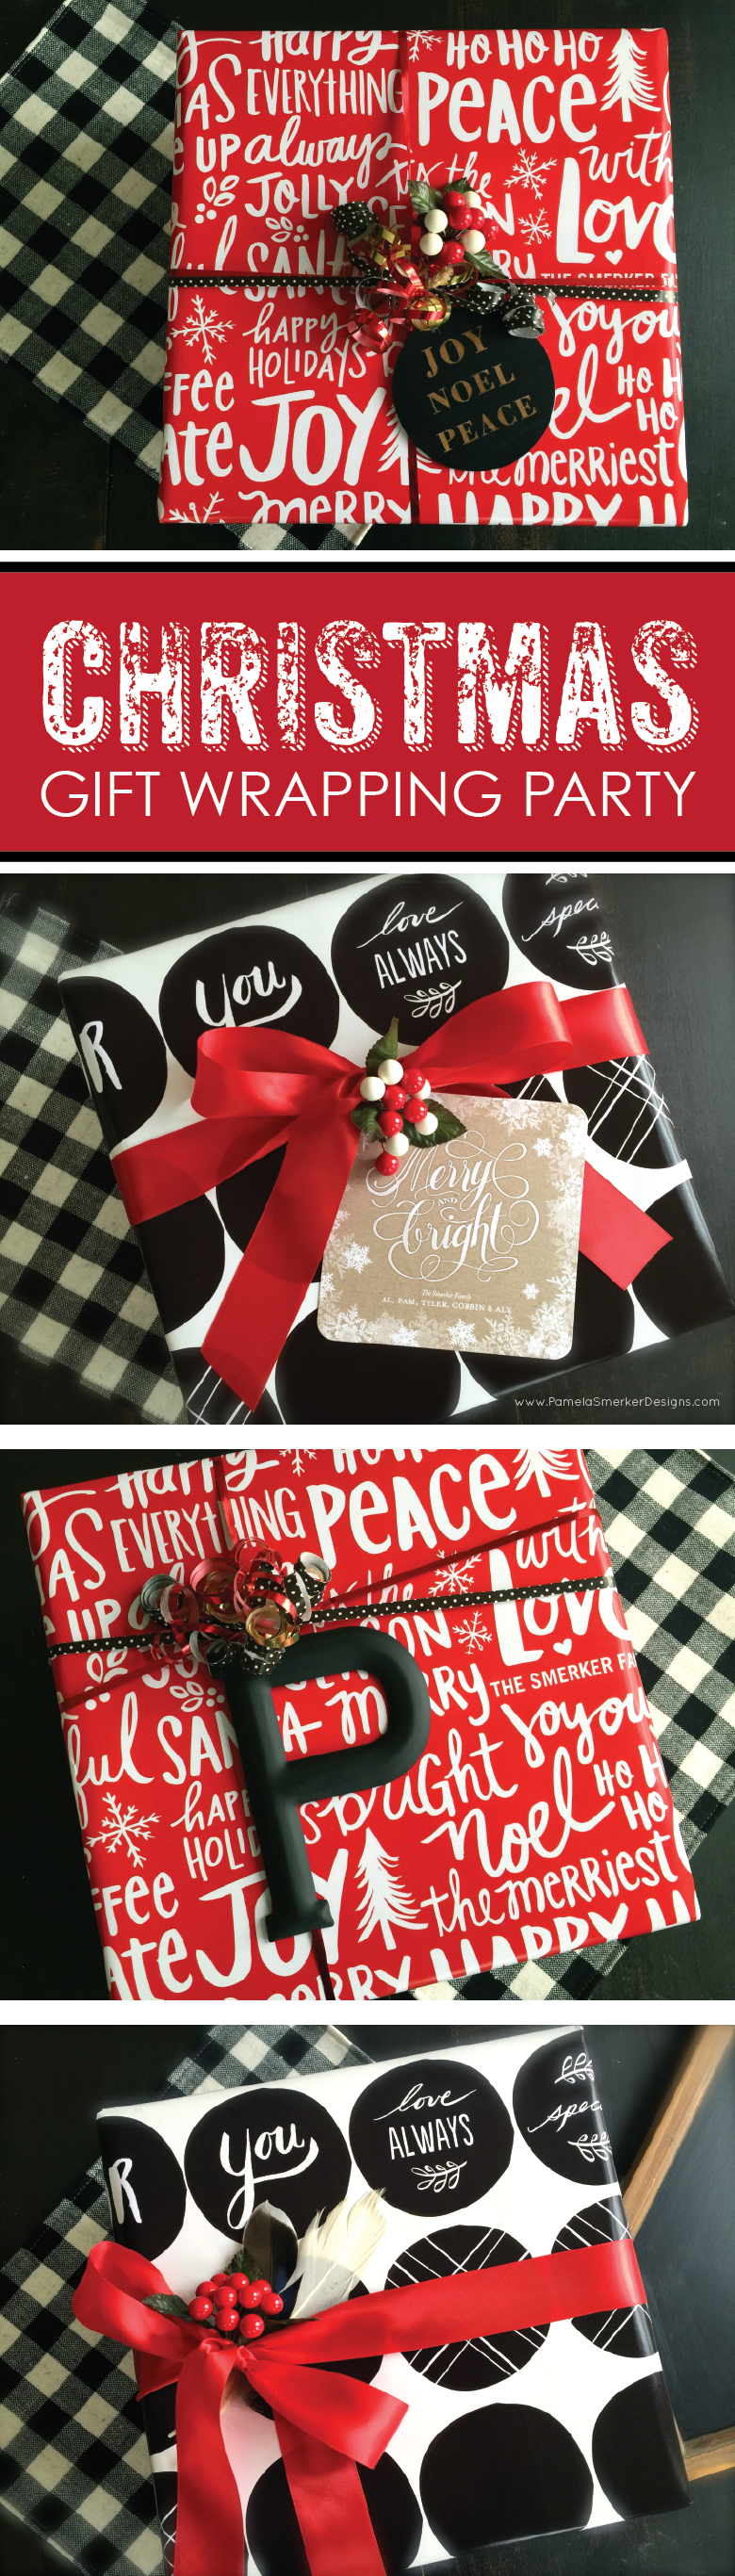 DIY Christmas Gift Wrapping Party